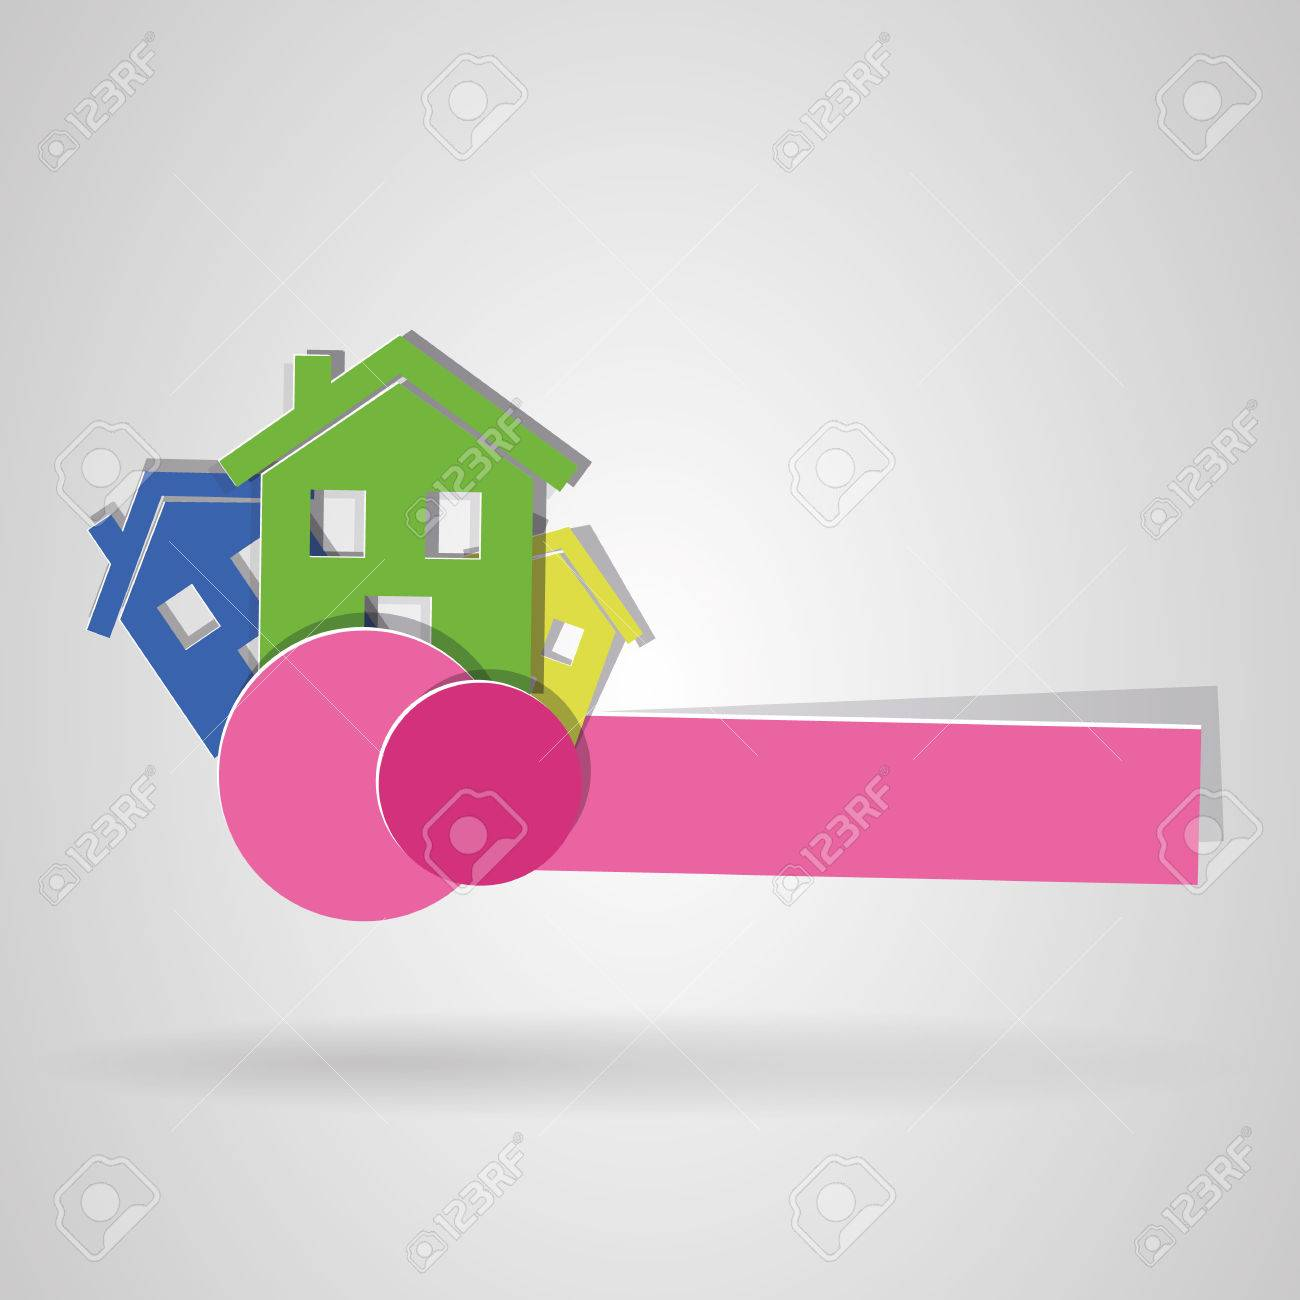 Logo Of House Colors. Vector Image Royalty Free Cliparts, Vectors ...